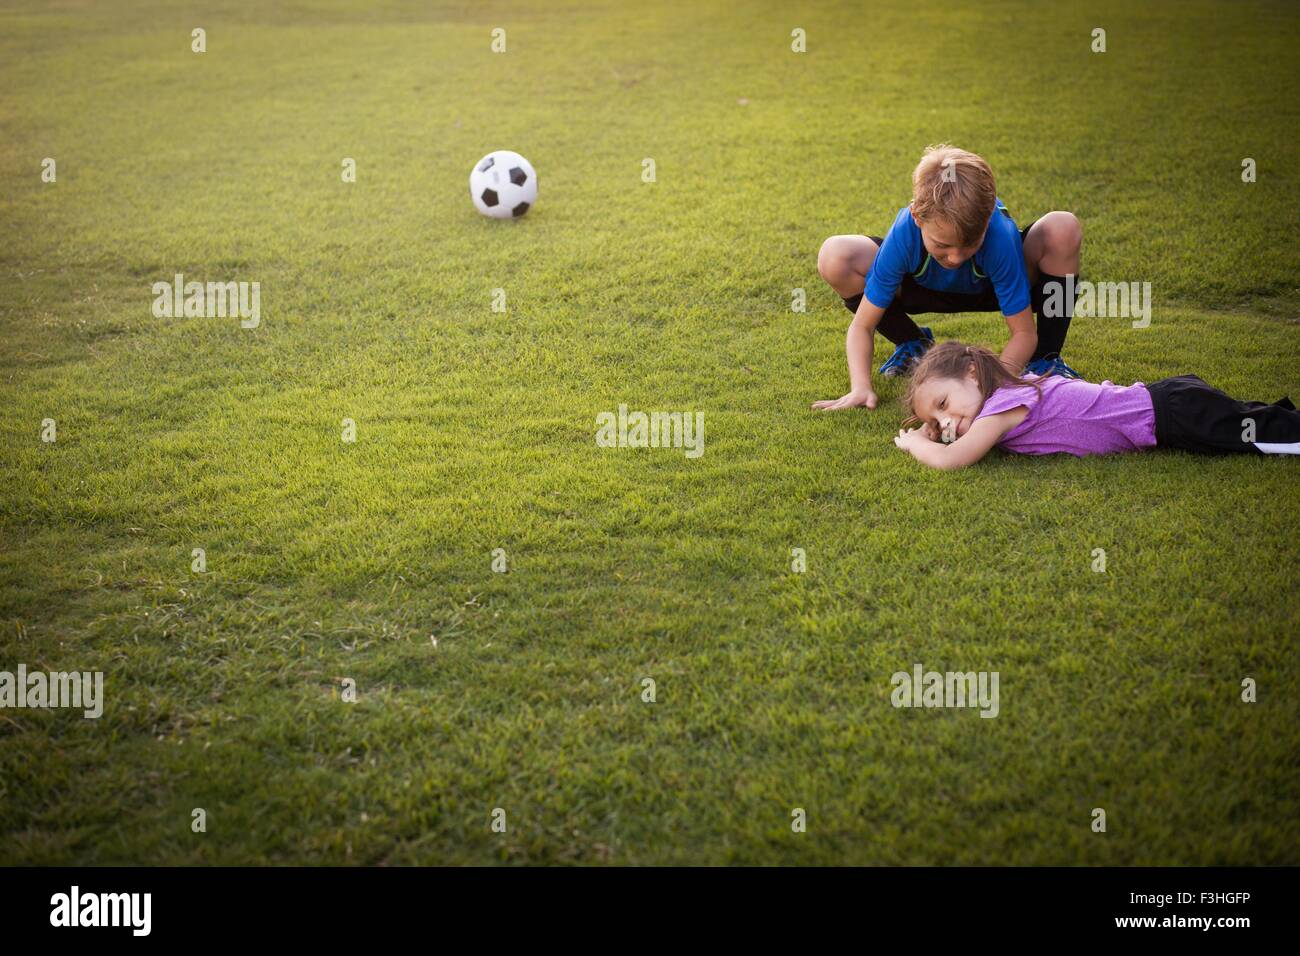 Boy tending injured younger sister on football practice pitch - Stock Image